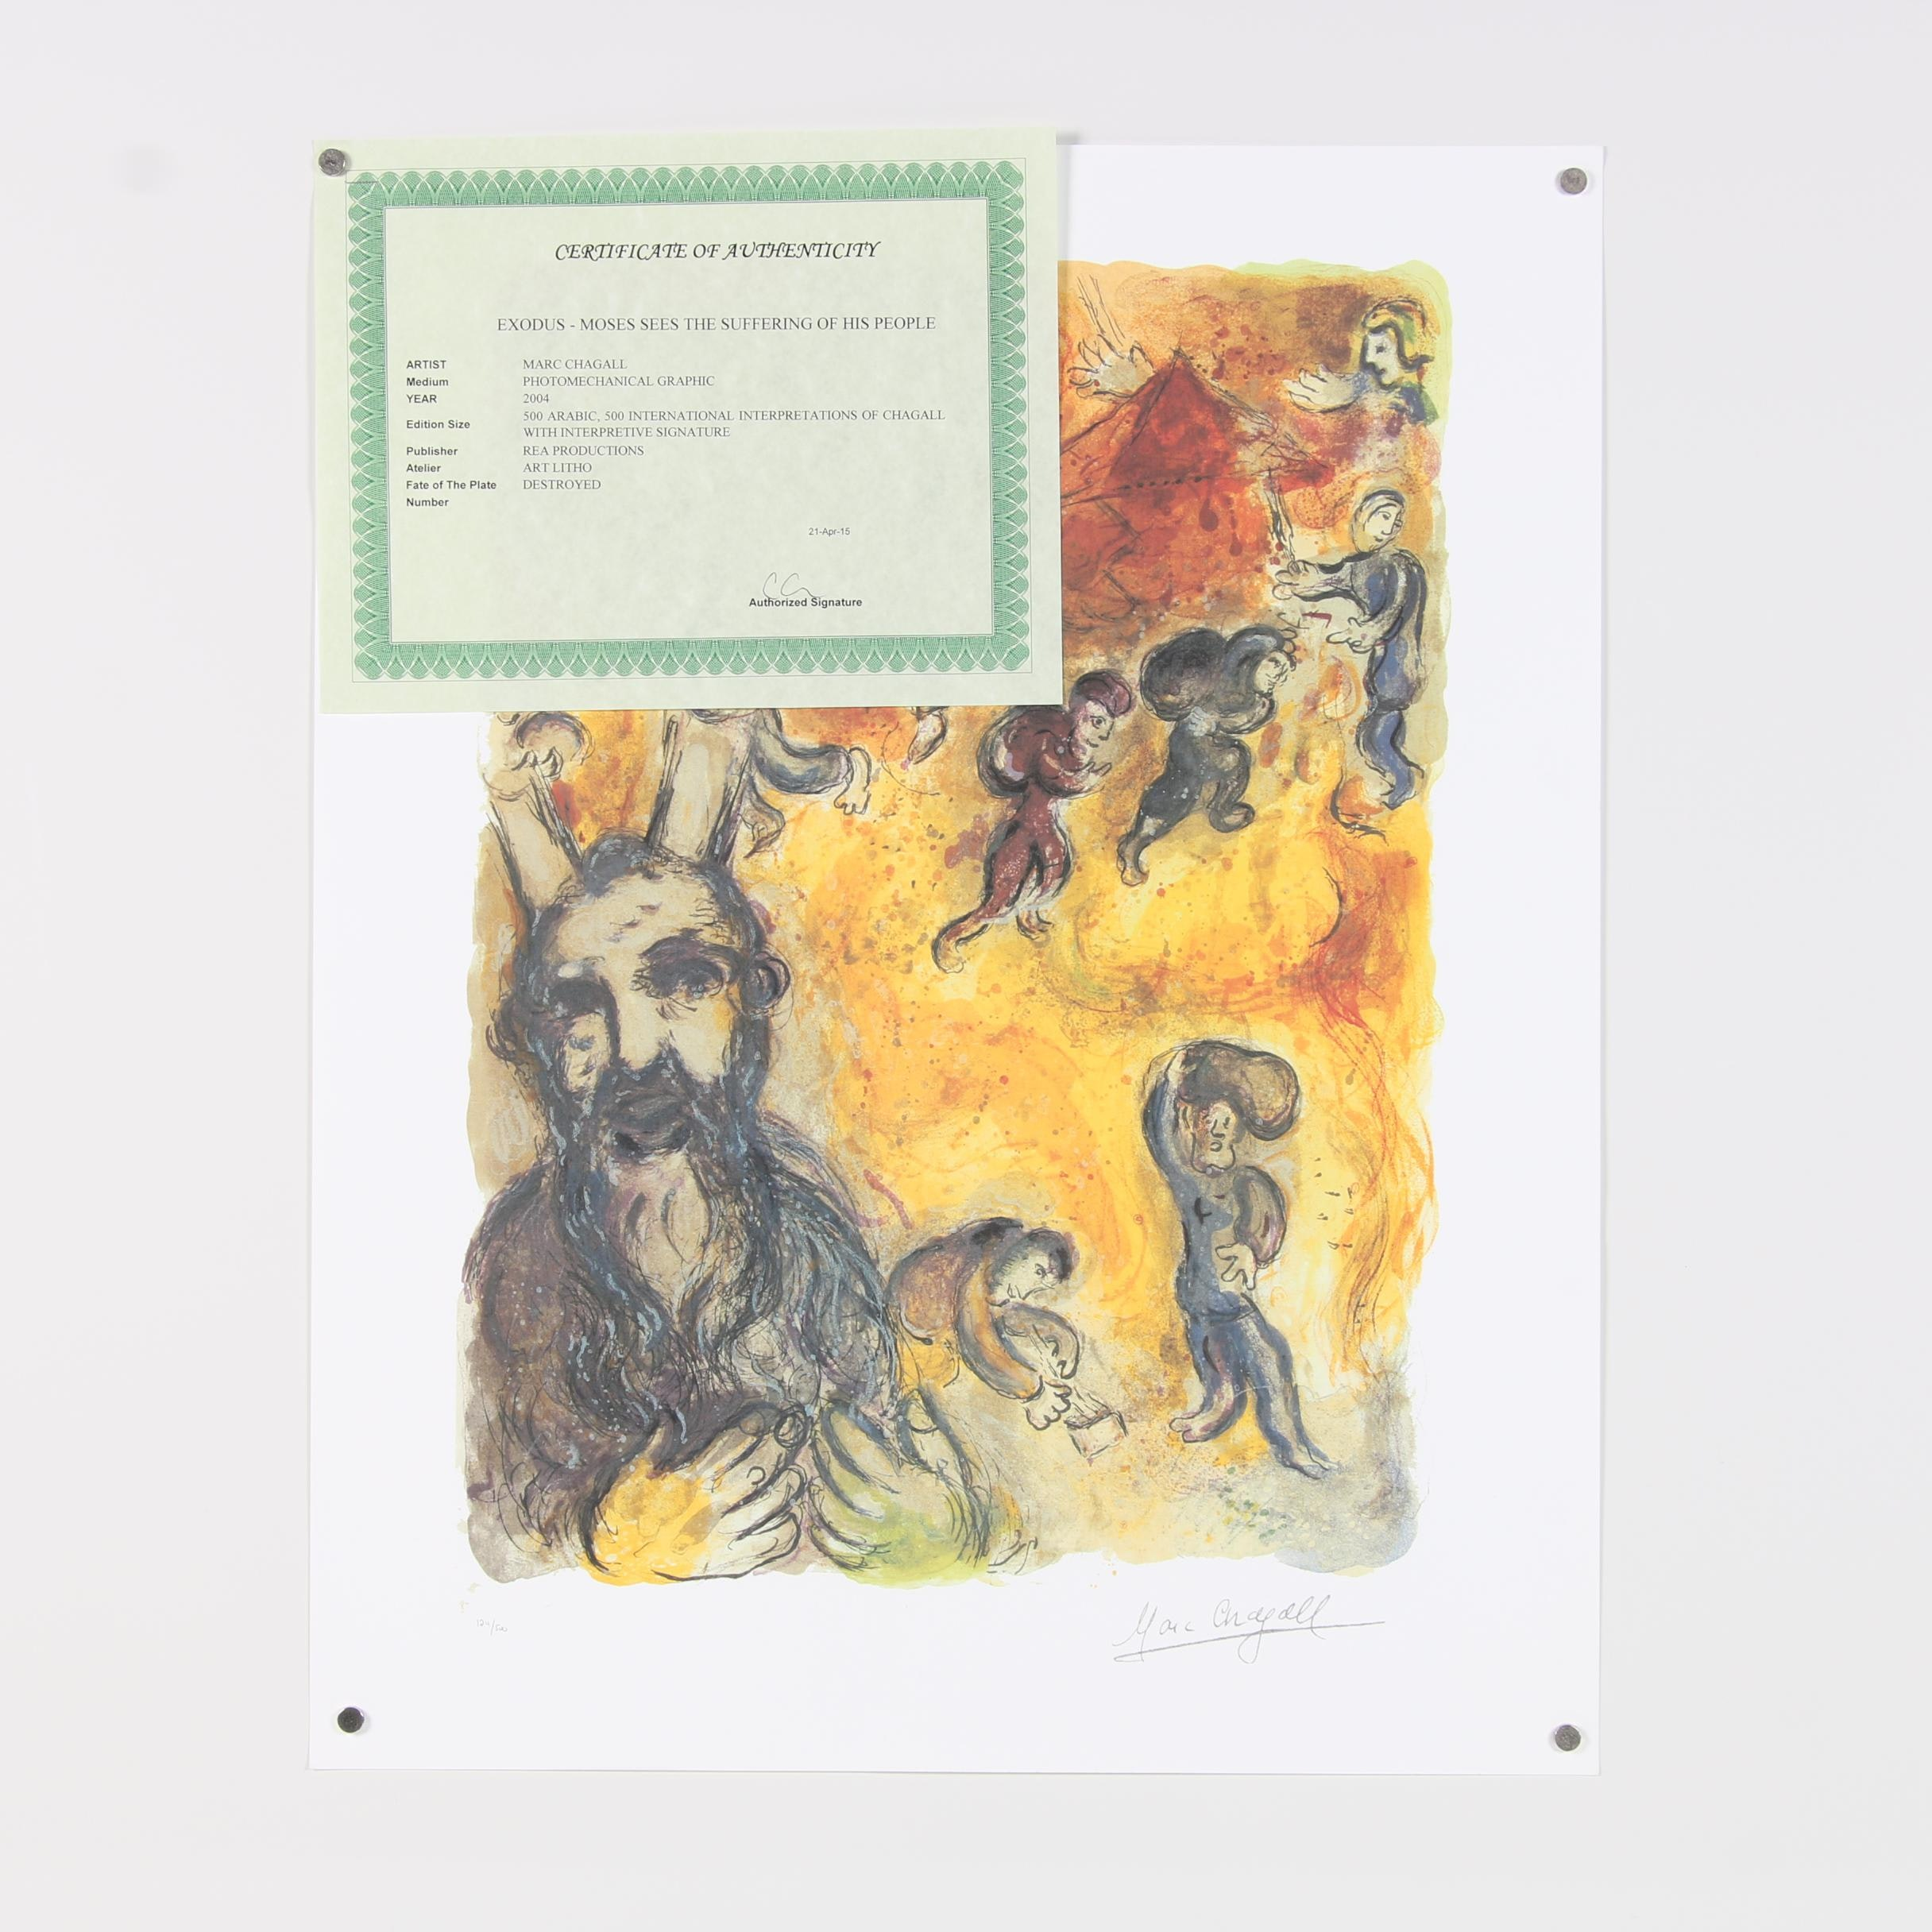 "2004 Offset Lithograph after Marc Chagall ""Exodus - Moses Sees the Suffering .."""